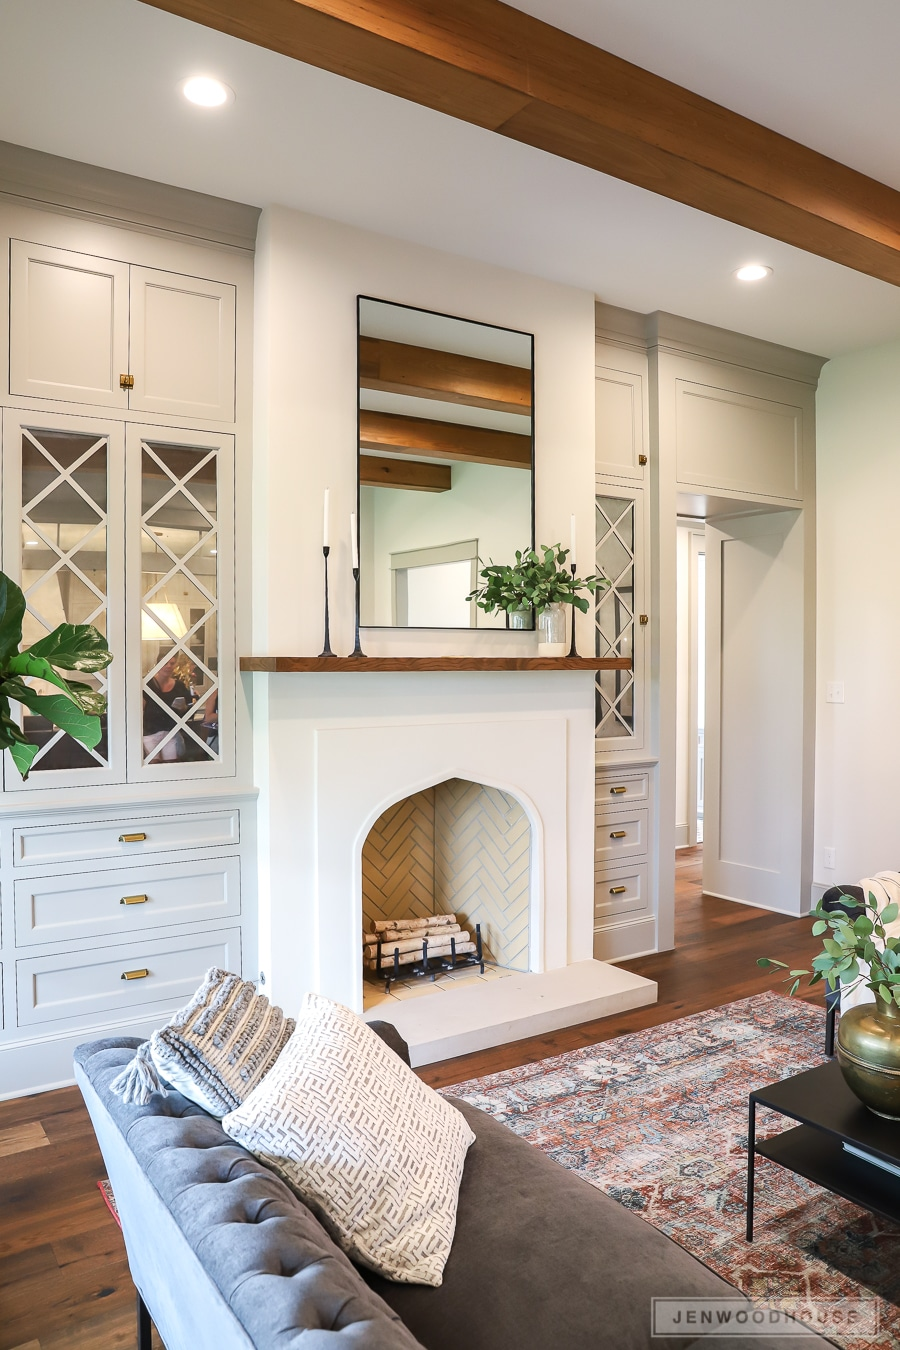 The Living Room With That Charming Fireplace And Cabinetry: